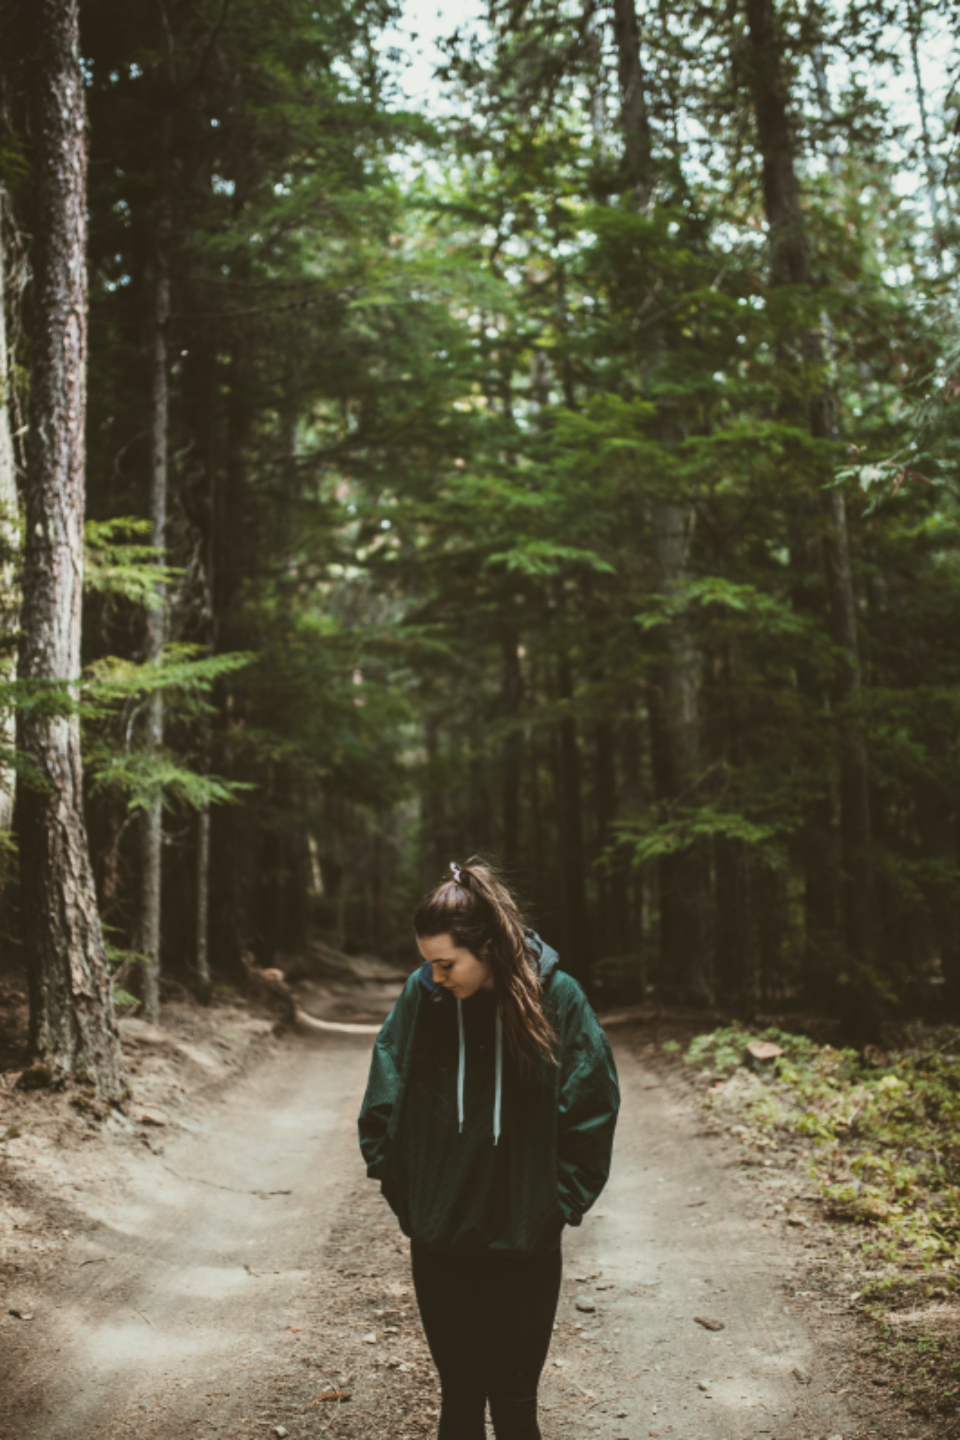 girl road trail dirt road hiking nature forest trees hoodie people young woods wilderness hiking trekking jacket